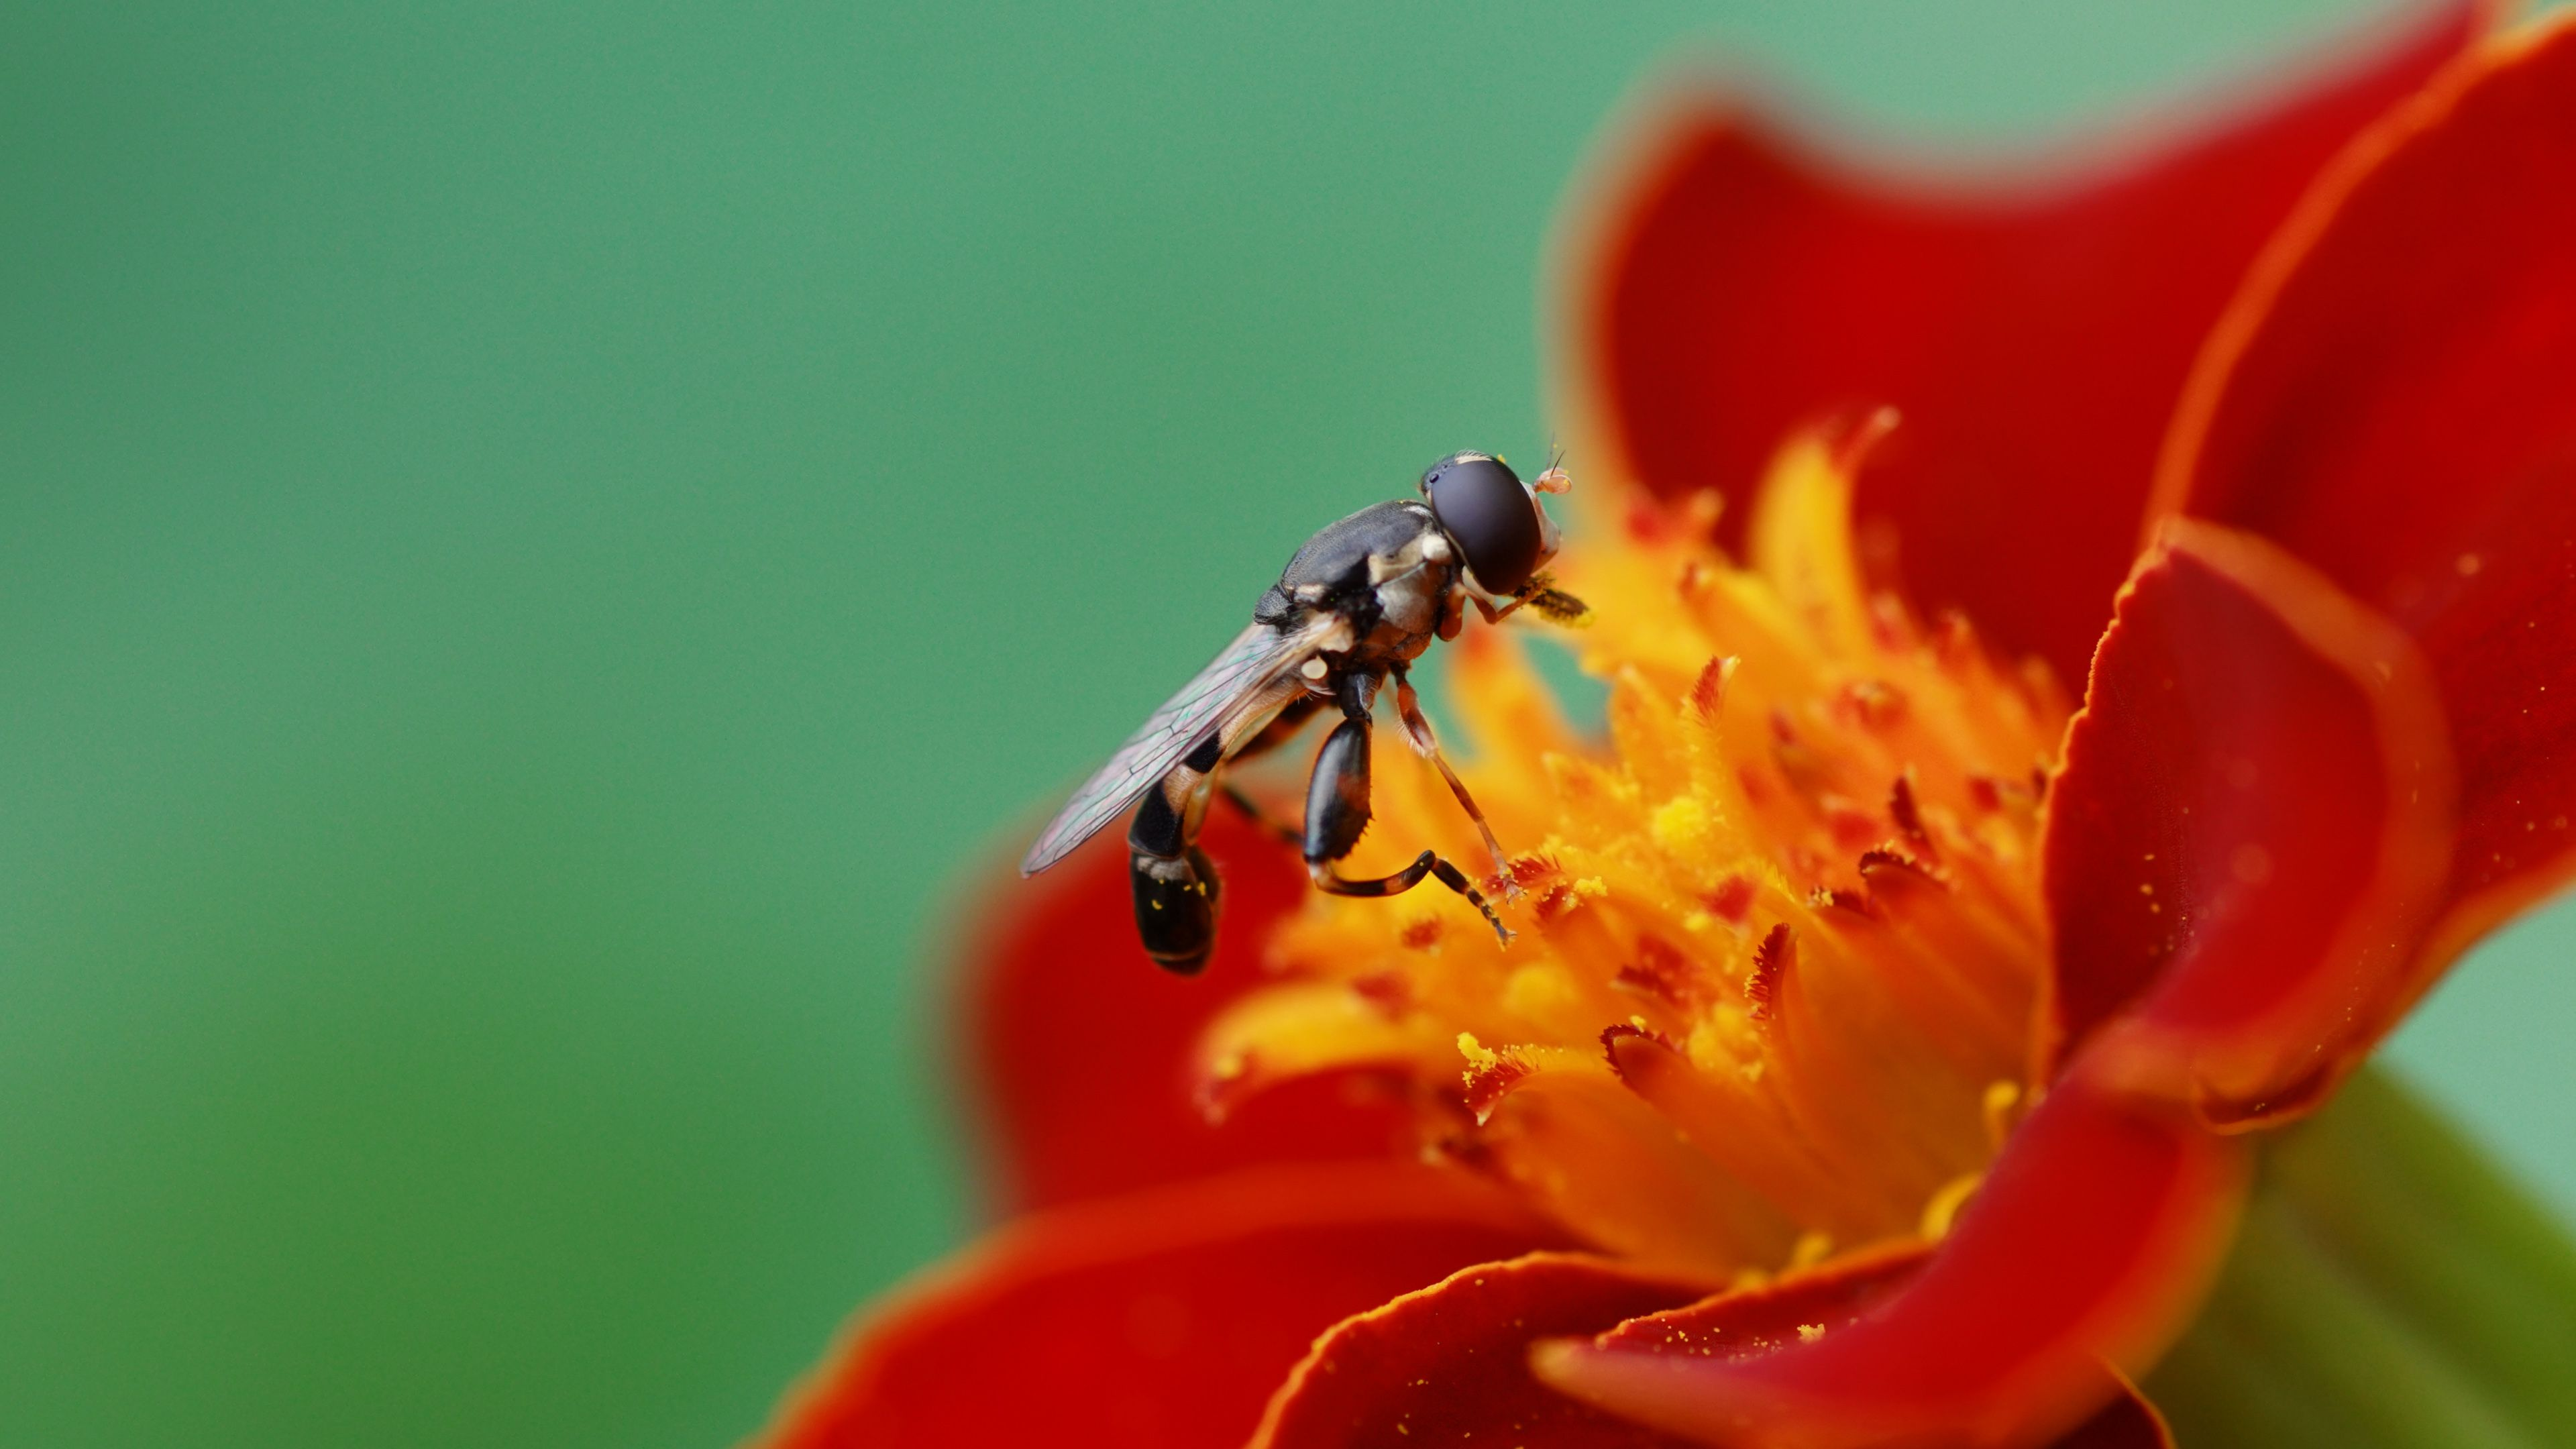 4k Nature Wallpaper With Macro Photo Close Up Flower And Wasp